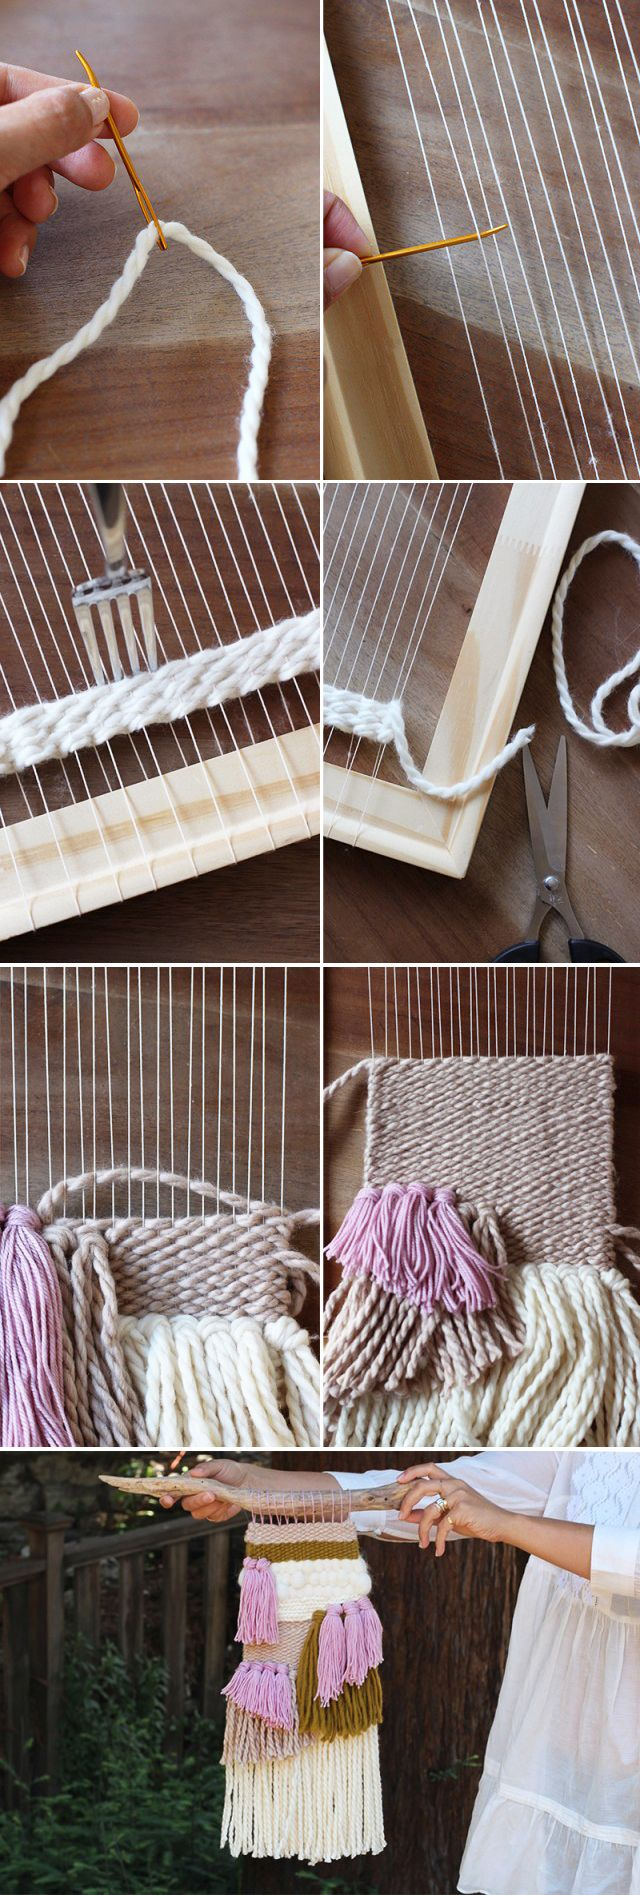 Weaving 101 #YearOfMaking